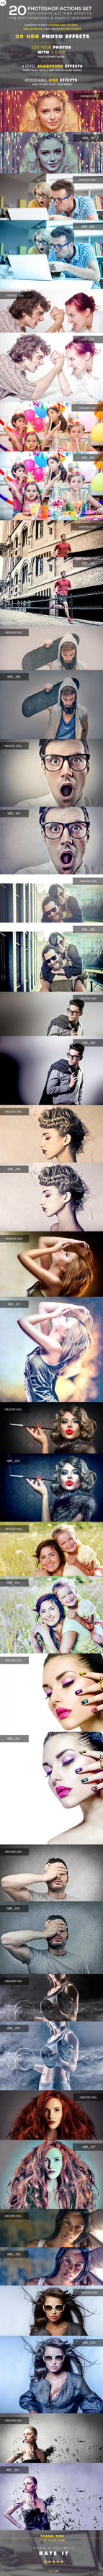 20 HDR Photo Effects V.02 - Photoshop Action by Hz-designer